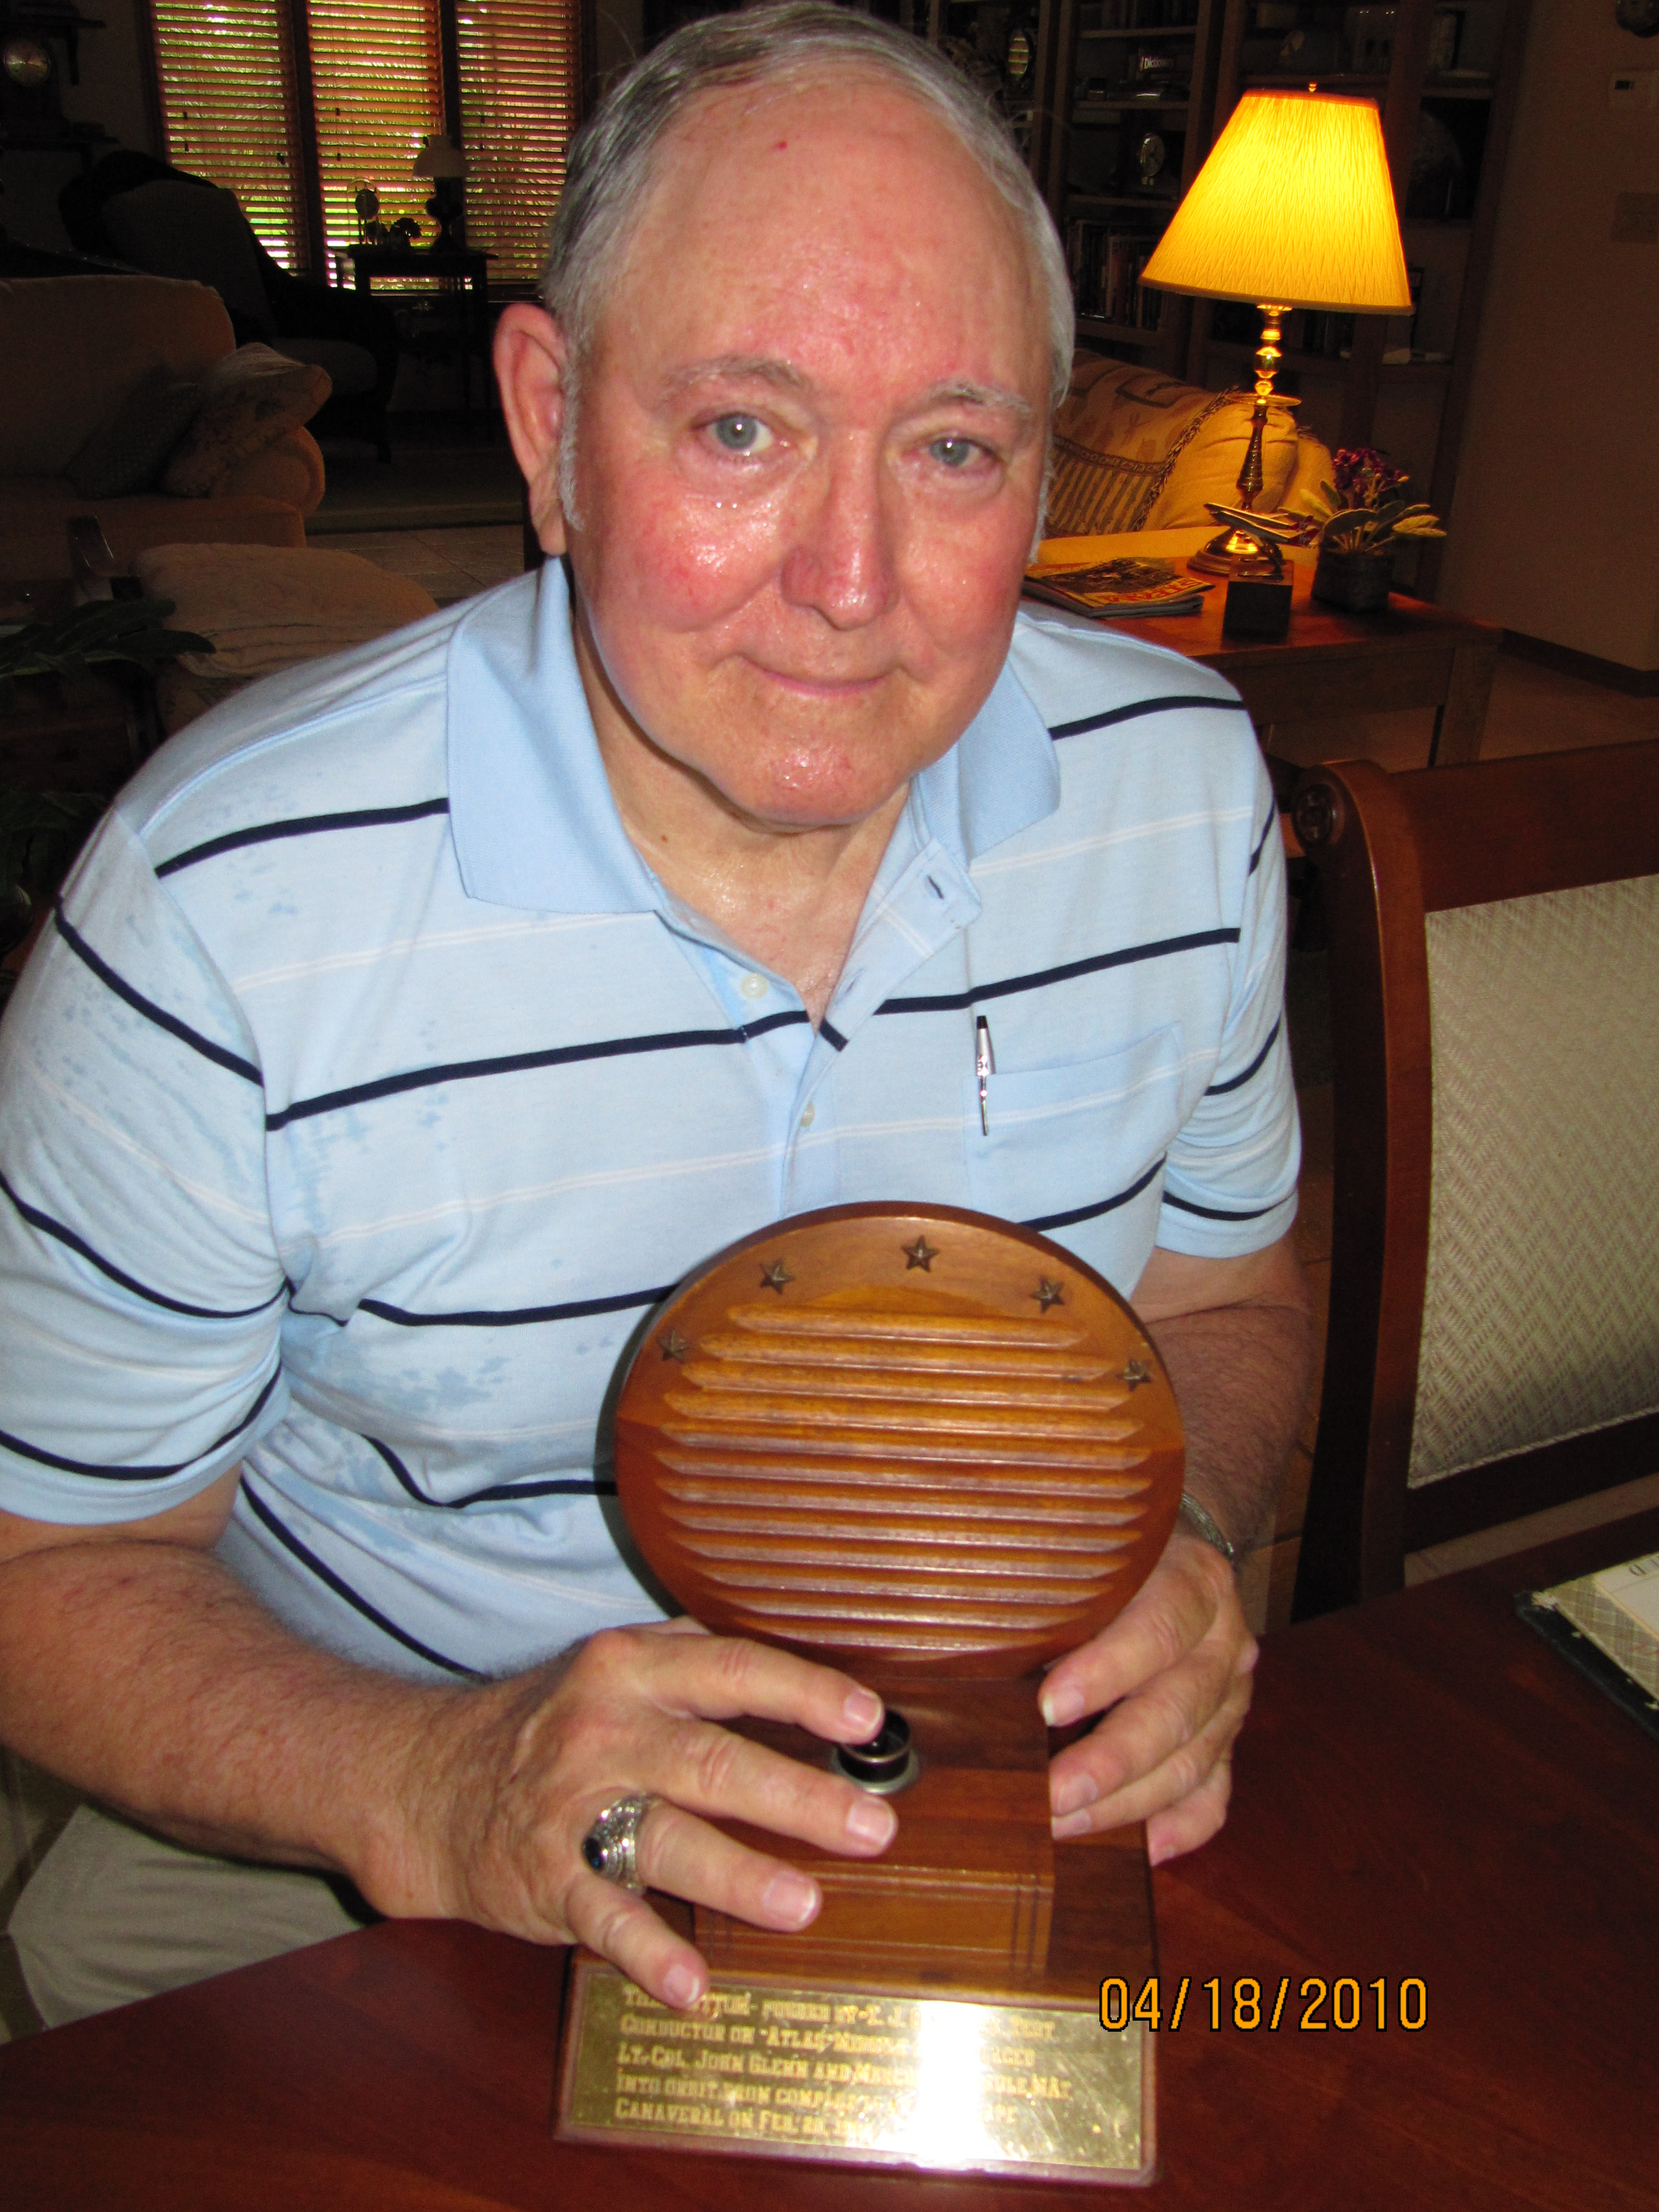 Jim pushing the John Glenn button just before it was donated to a NASA museum. The trophy was donated by T.J.s wife Anne after his passing in 2009.